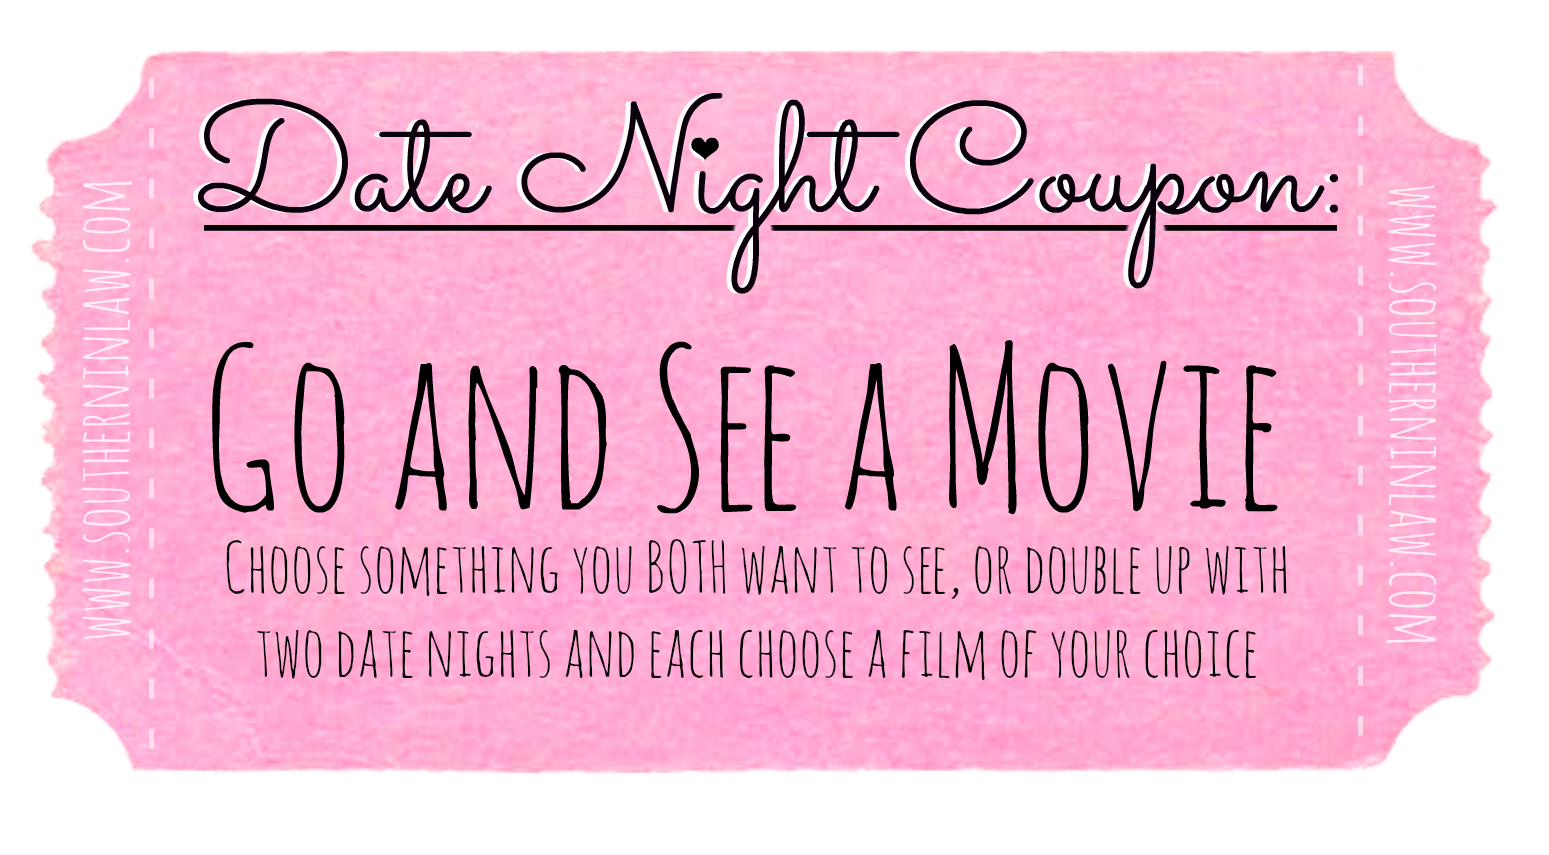 Cheap Date Ideas - Date Night Coupons - Go and See a Movie